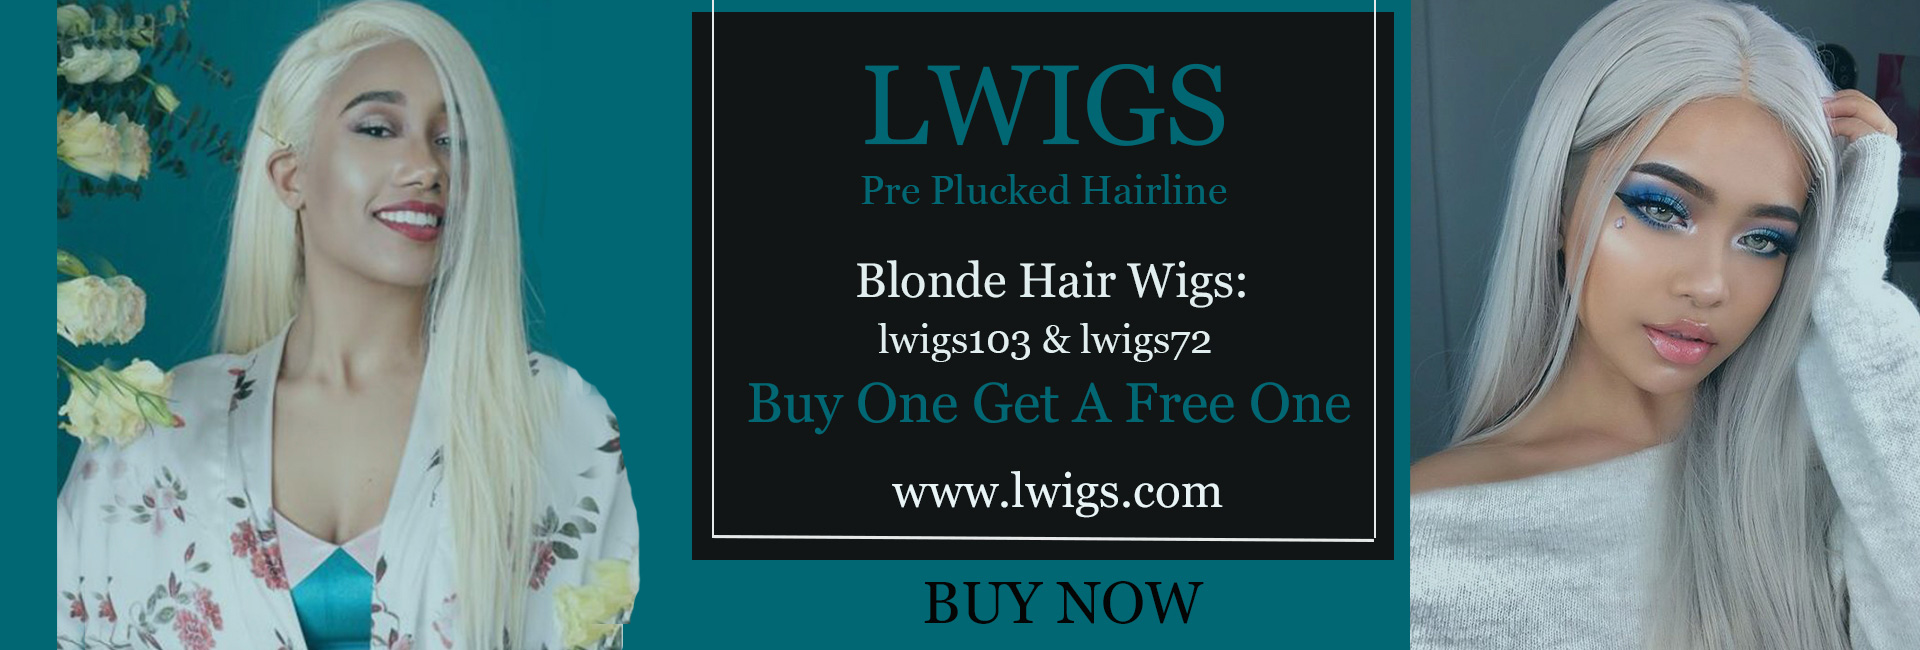 https://www.lwigs.com/brazilian-virgin-hair-long-hair-silk-straight-grey-hair-color-full-lace-wigs-lwigs103.html